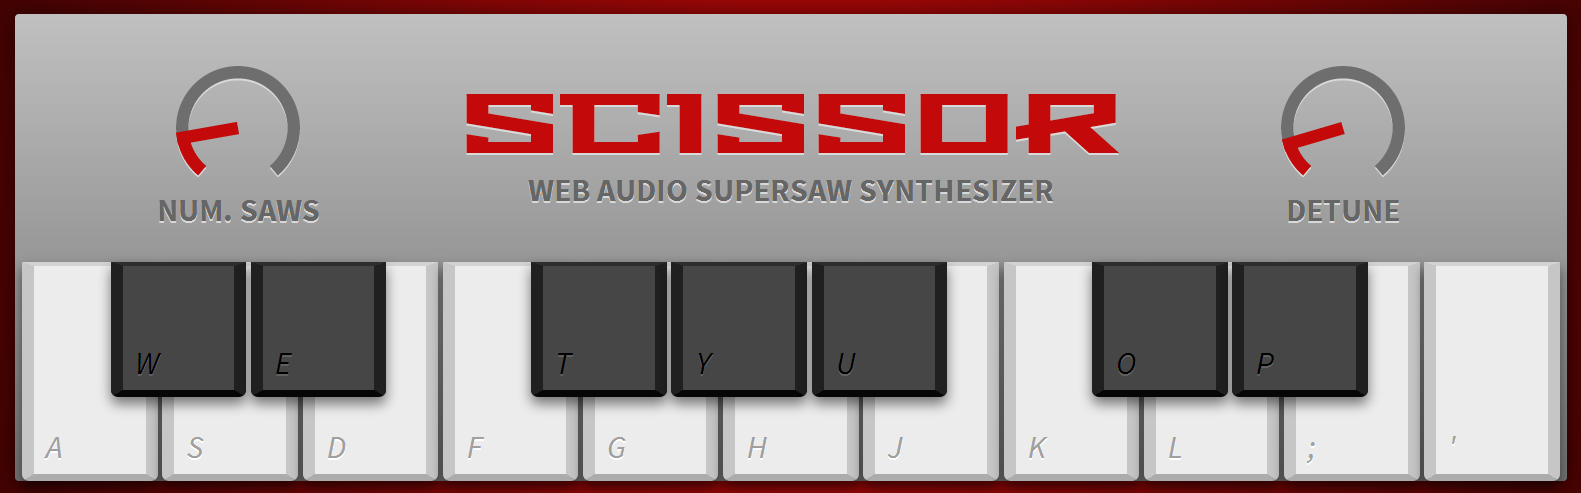 Web Audio Supersaw Synthesizer